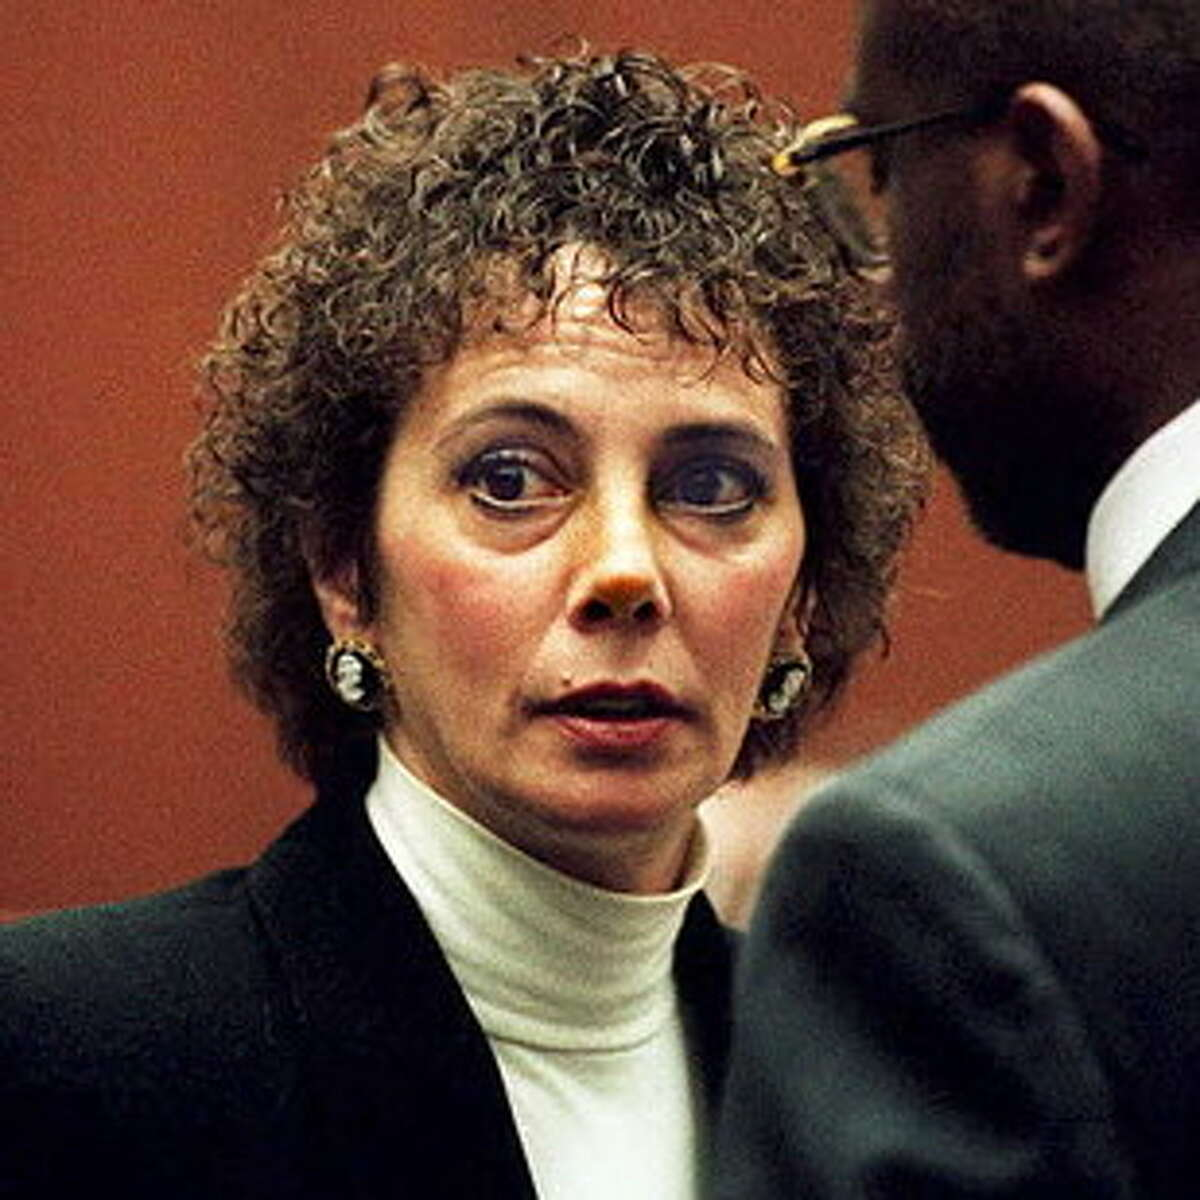 2. Marcia Clark, the prosecutor in O.J. Simpson murder case, carried a gun for protection in the high-profile O.J. Simpson murder trial.